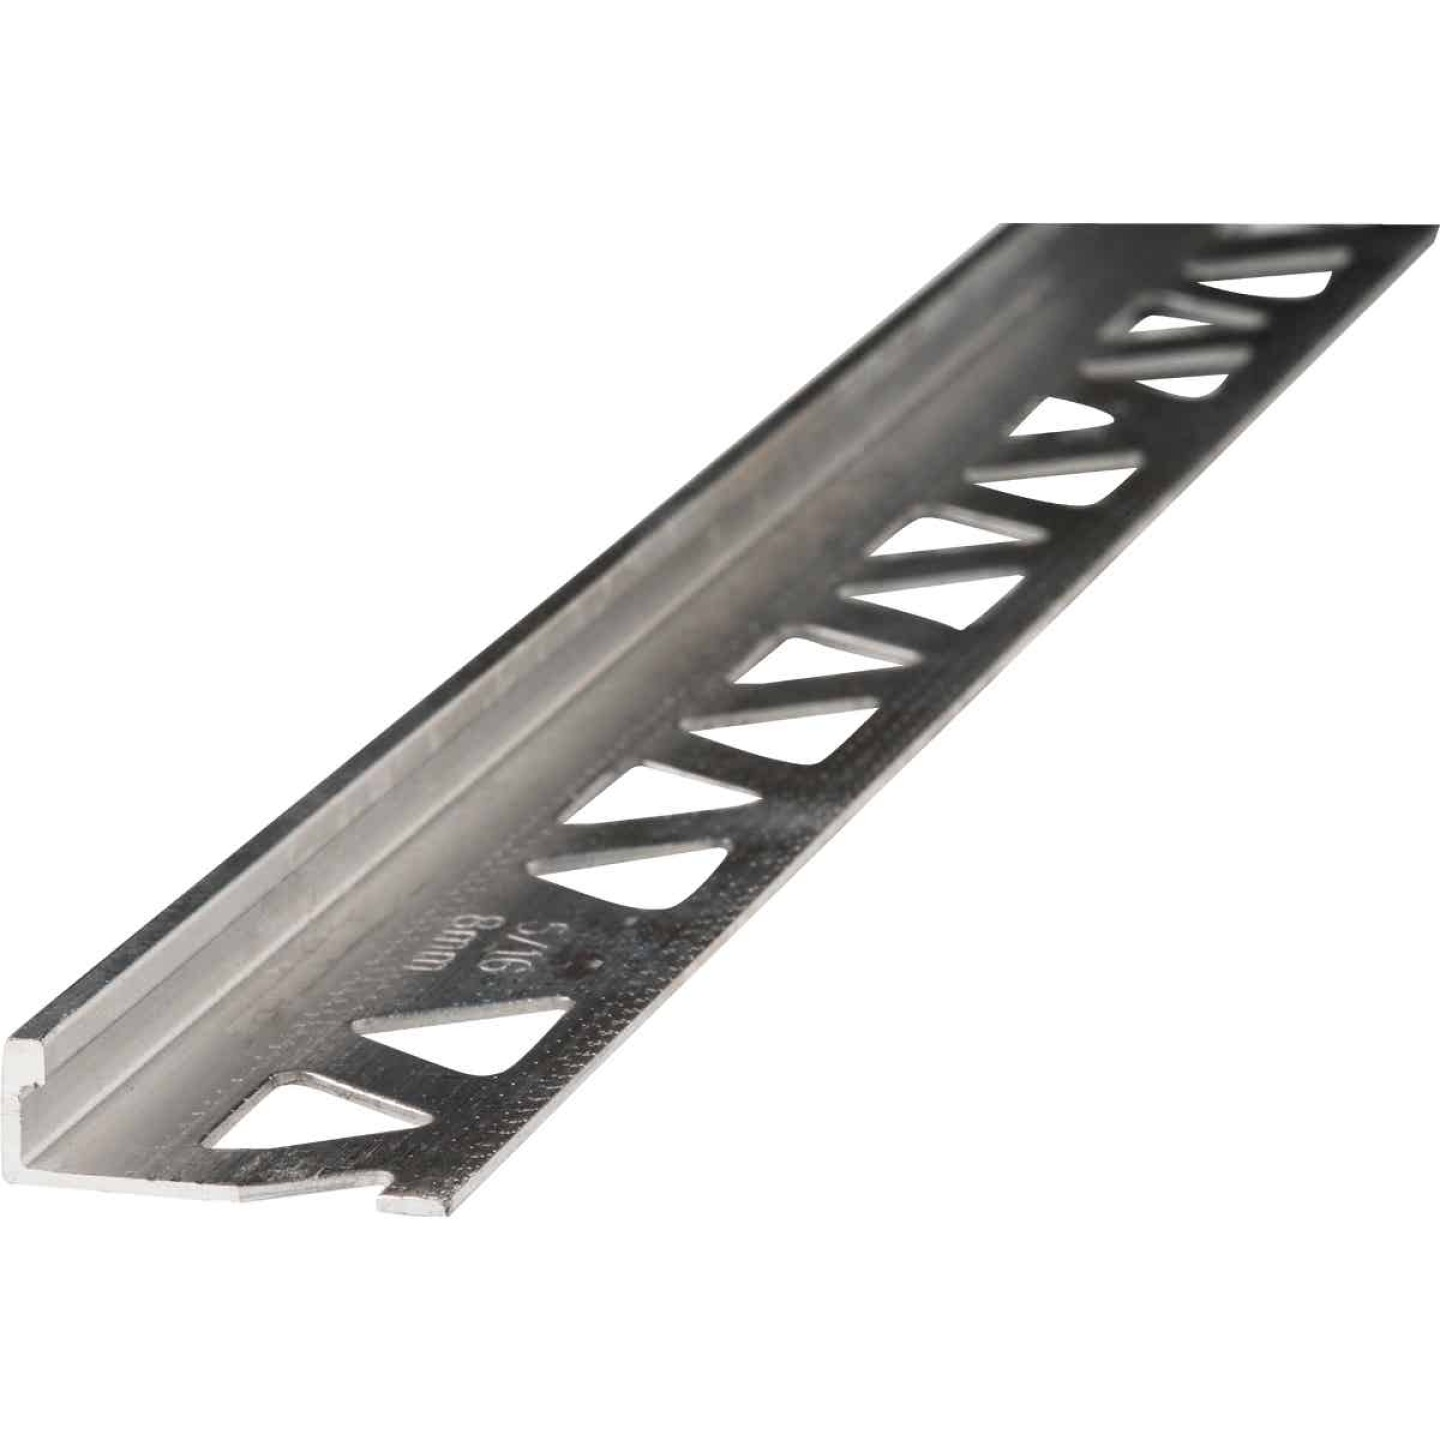 M D Building Products 5/16 In. x 8 Ft. Mill Aluminum L-Shape Ceramic Tile Edging Image 1